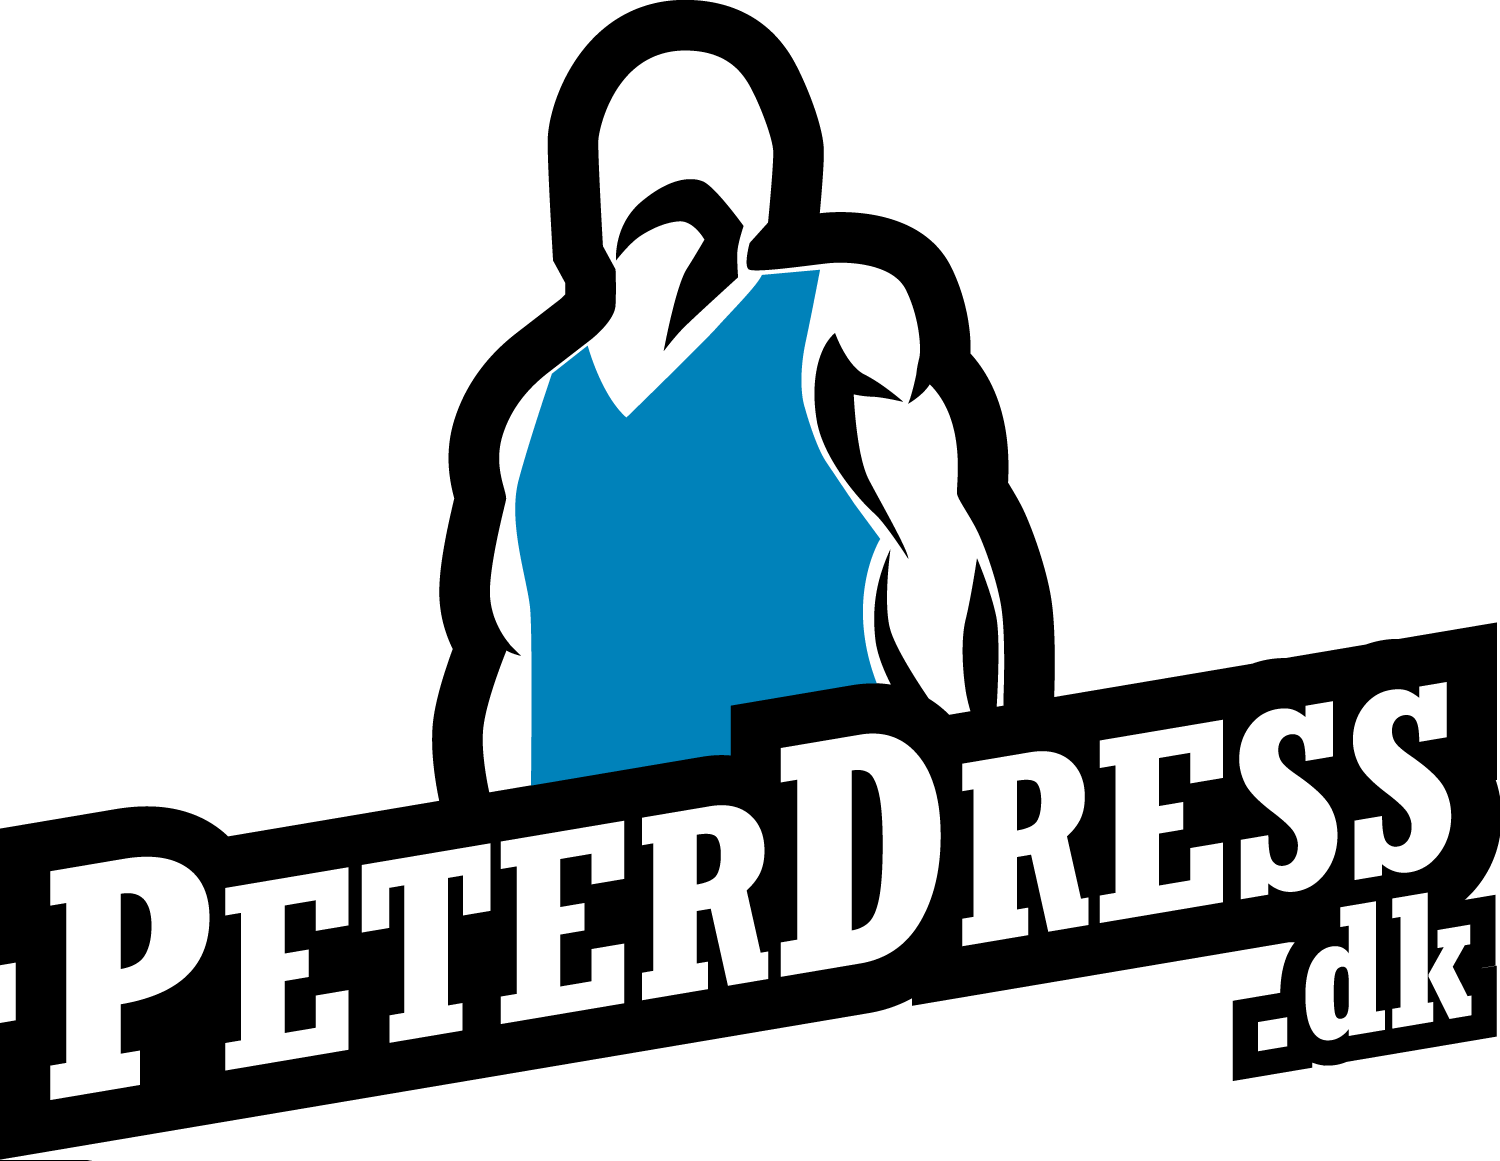 Peterdress_logo